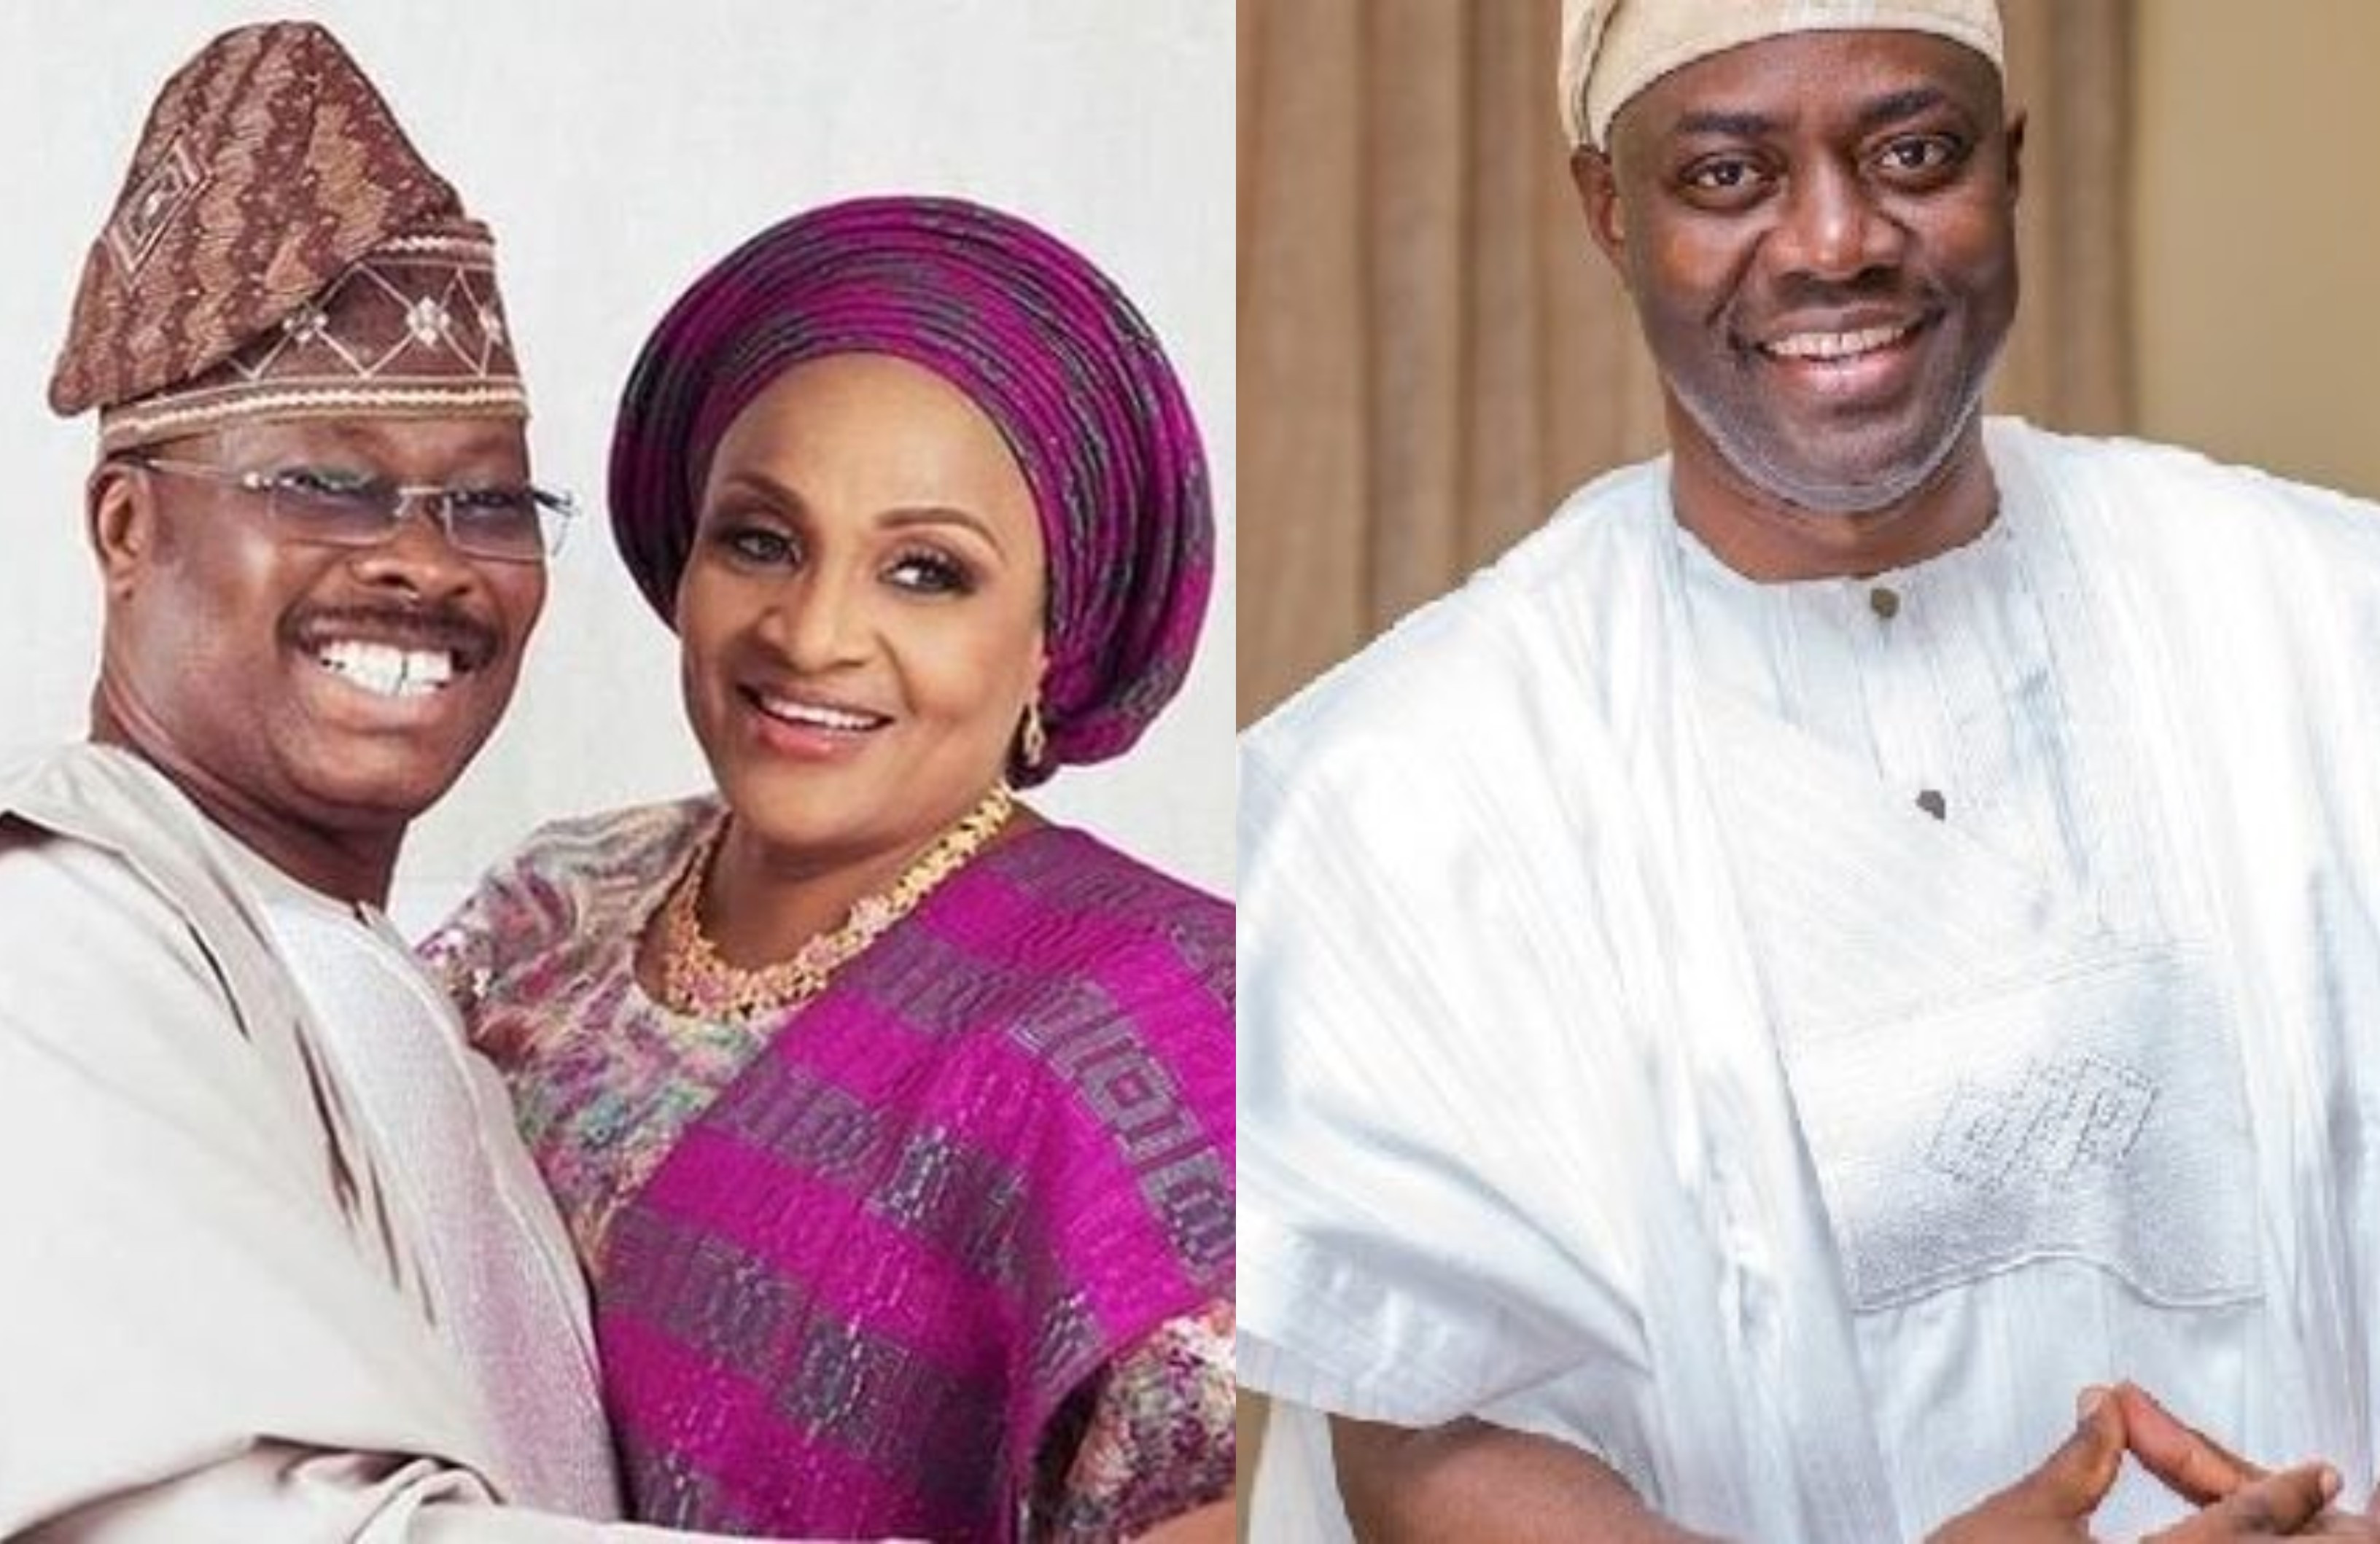 Makinde claimed he called me but he never did, we will all die one day - Ajimobi